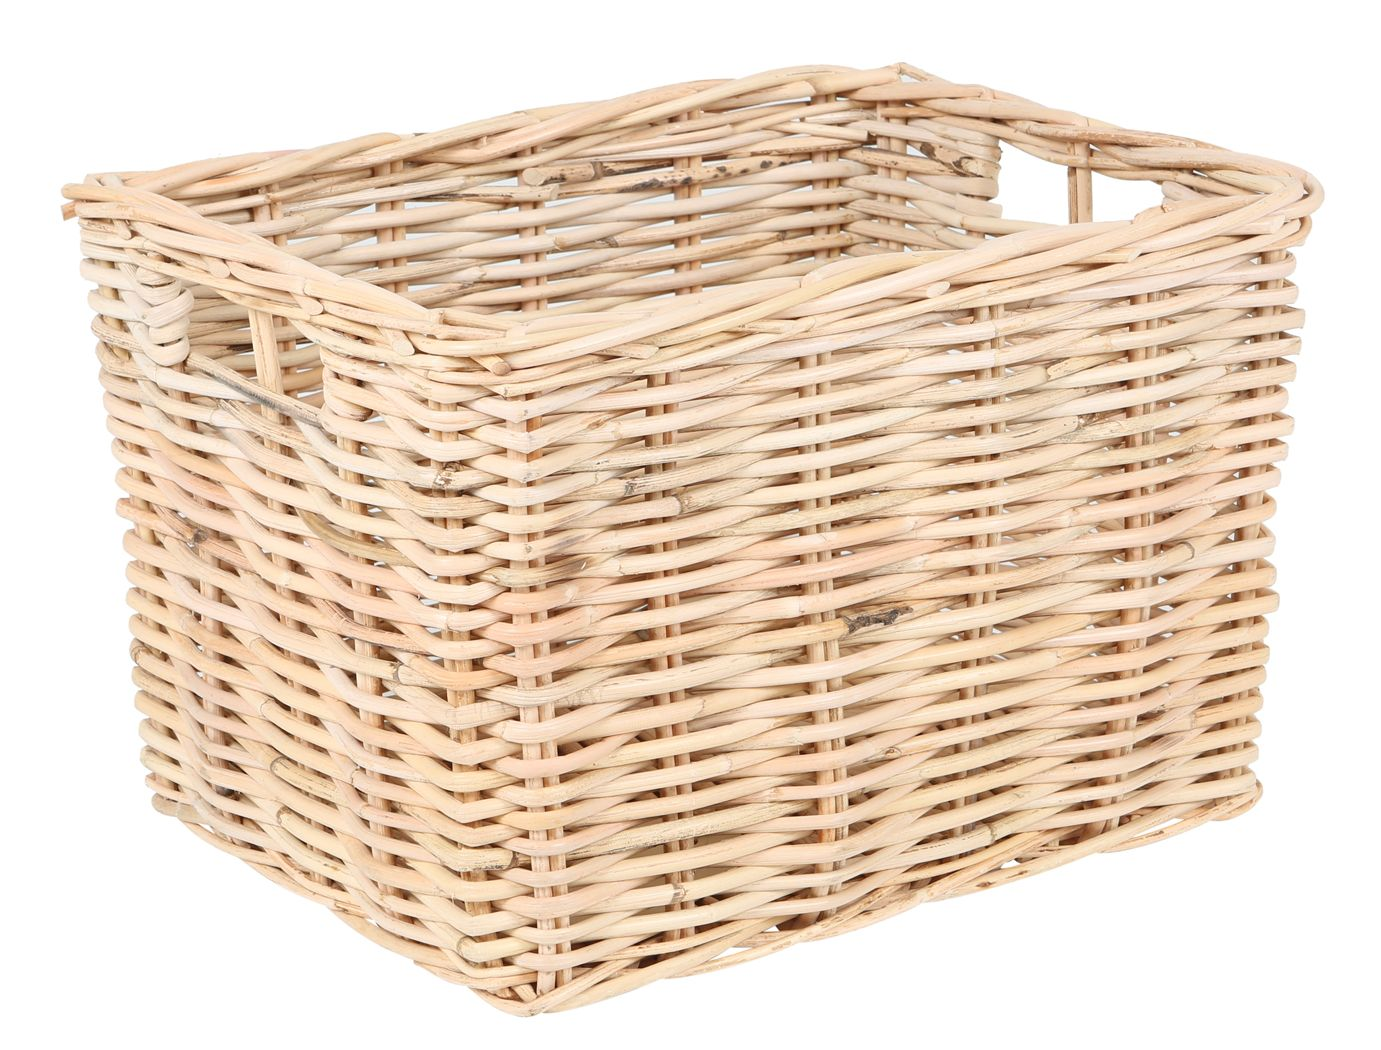 Regalkorb Rattan